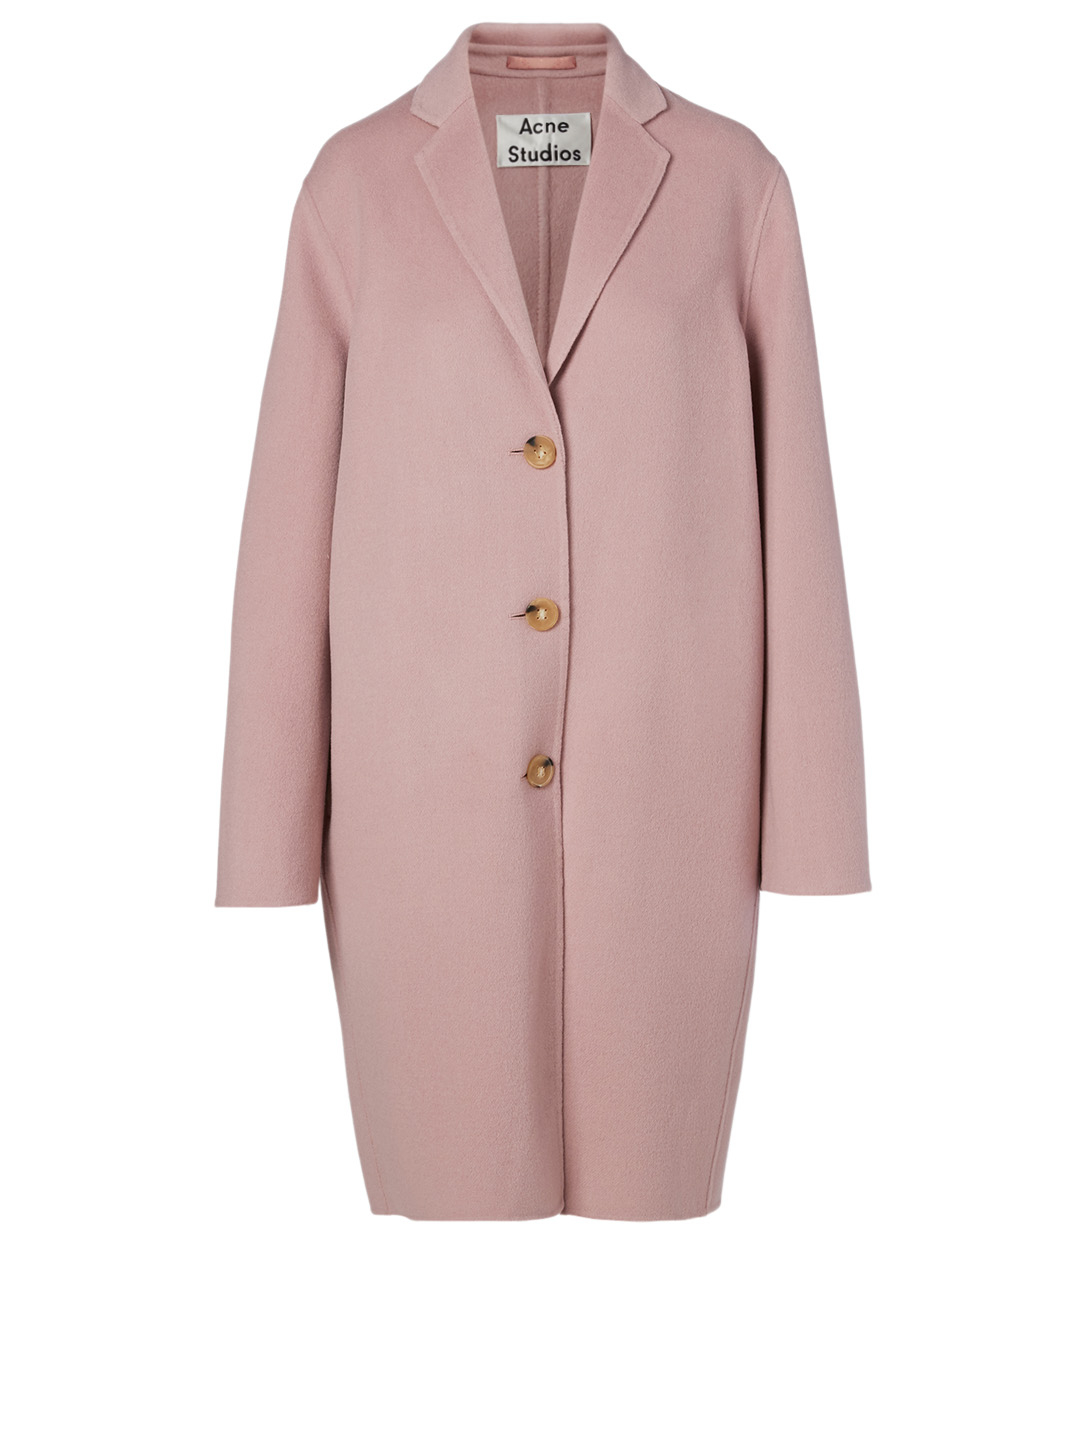 ACNE STUDIOS Wool And Cashmere Long Coat Women's Pink